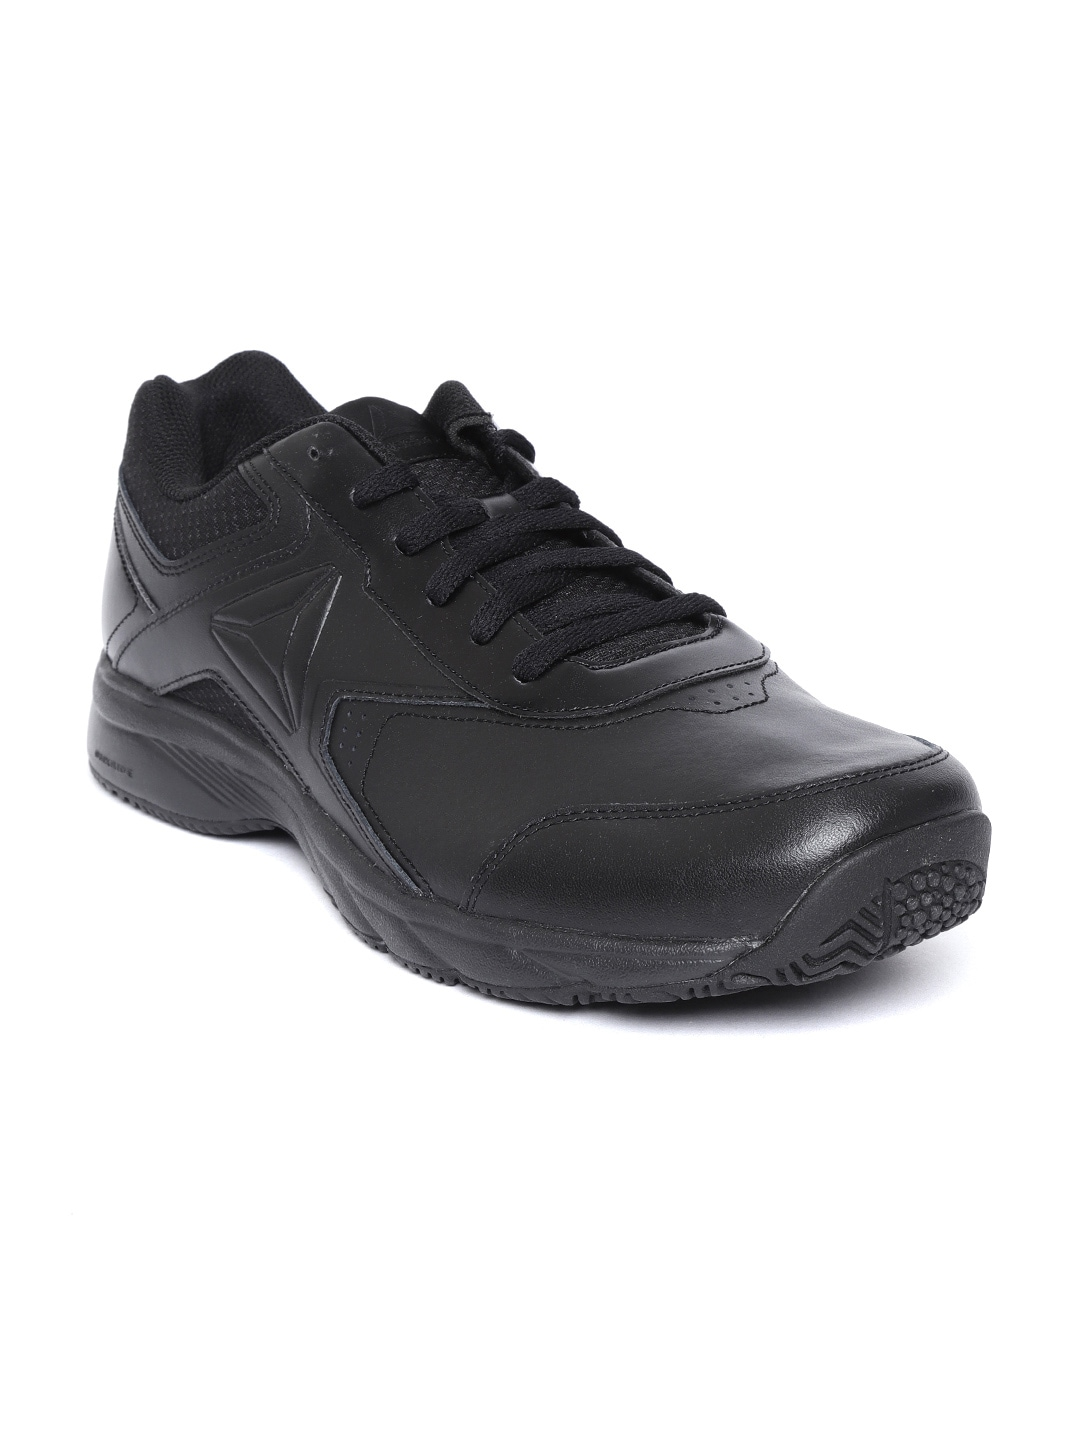 a0d8293d6afa Reebok Sports Shoes - Buy Reebok Sports Shoes in India